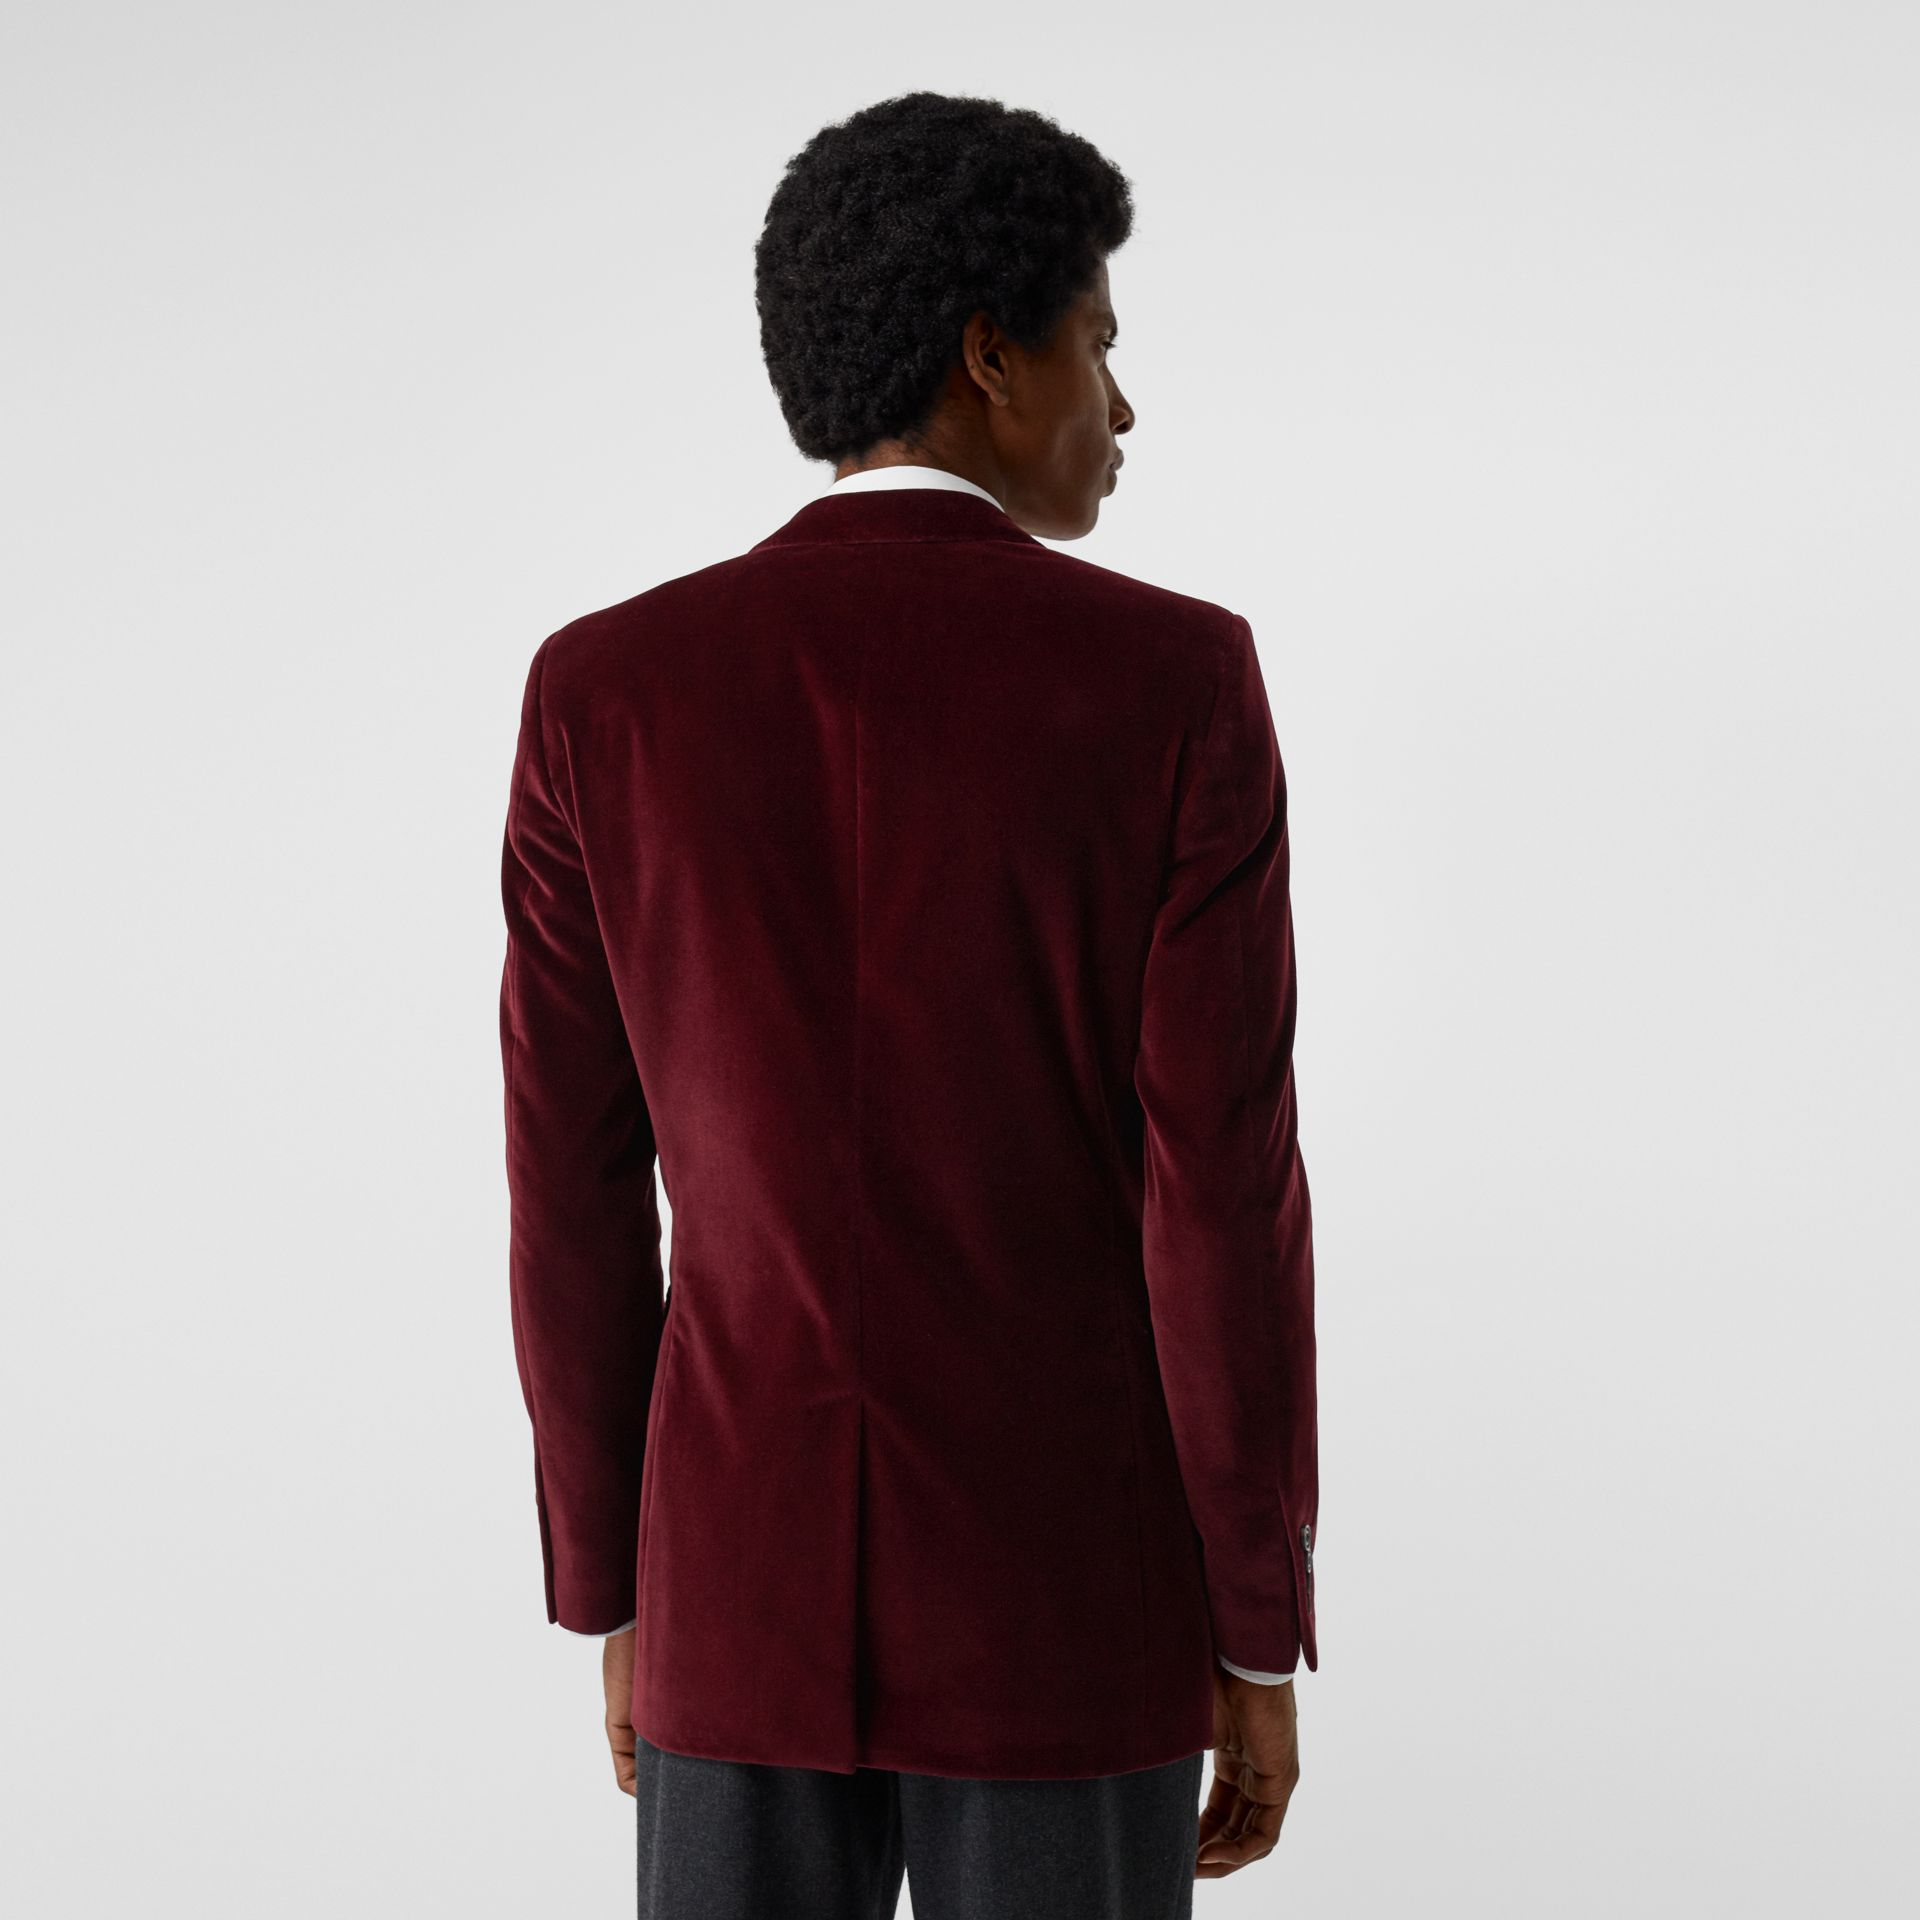 Classic Fit Velvet Tailored Jacket in Burgundy - Men | Burberry - gallery image 2